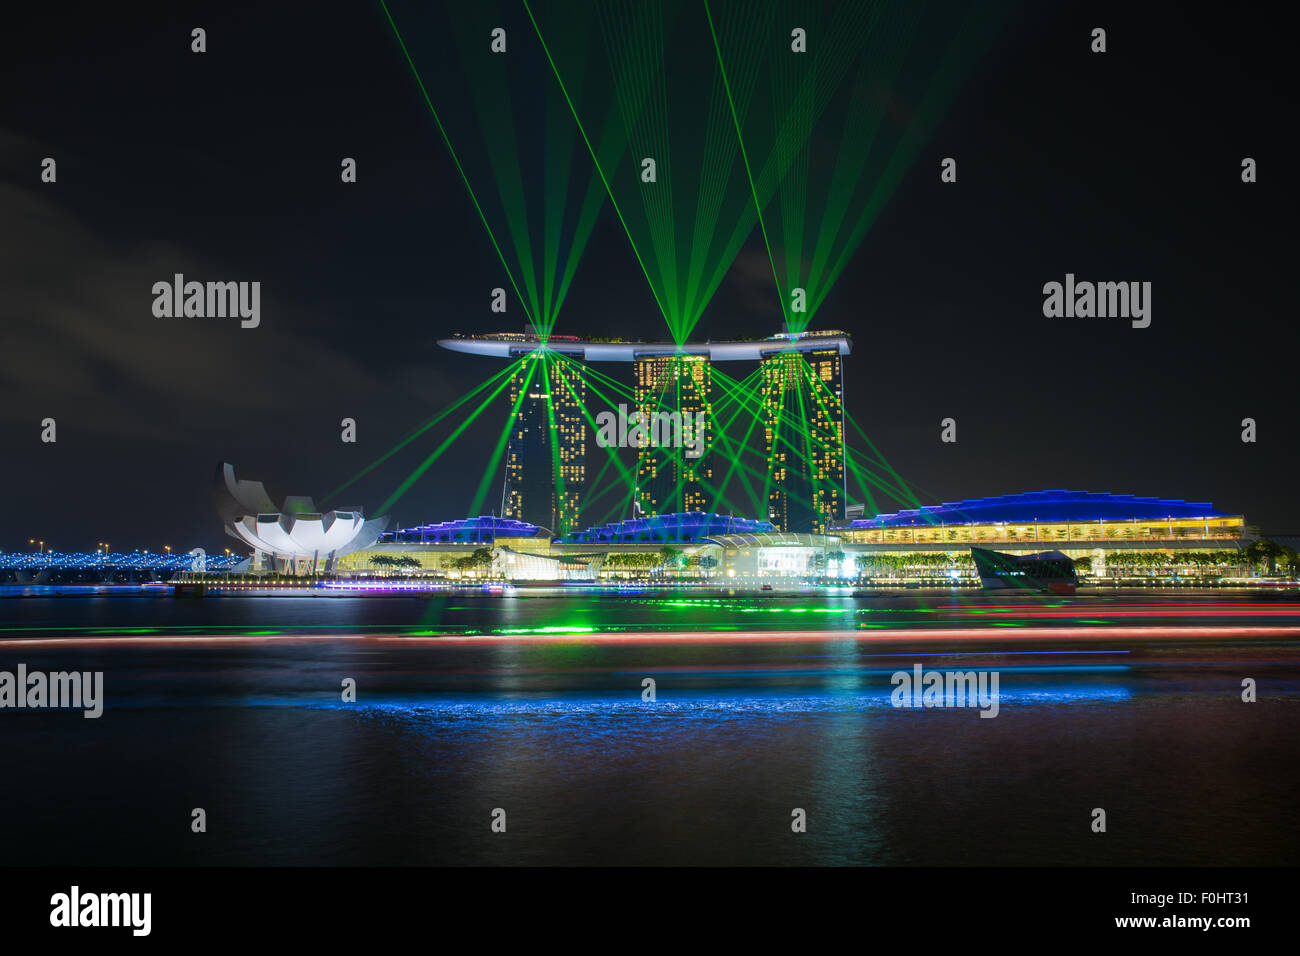 Laser-Show von Singapur Marina Bay, Singapur Stockbild